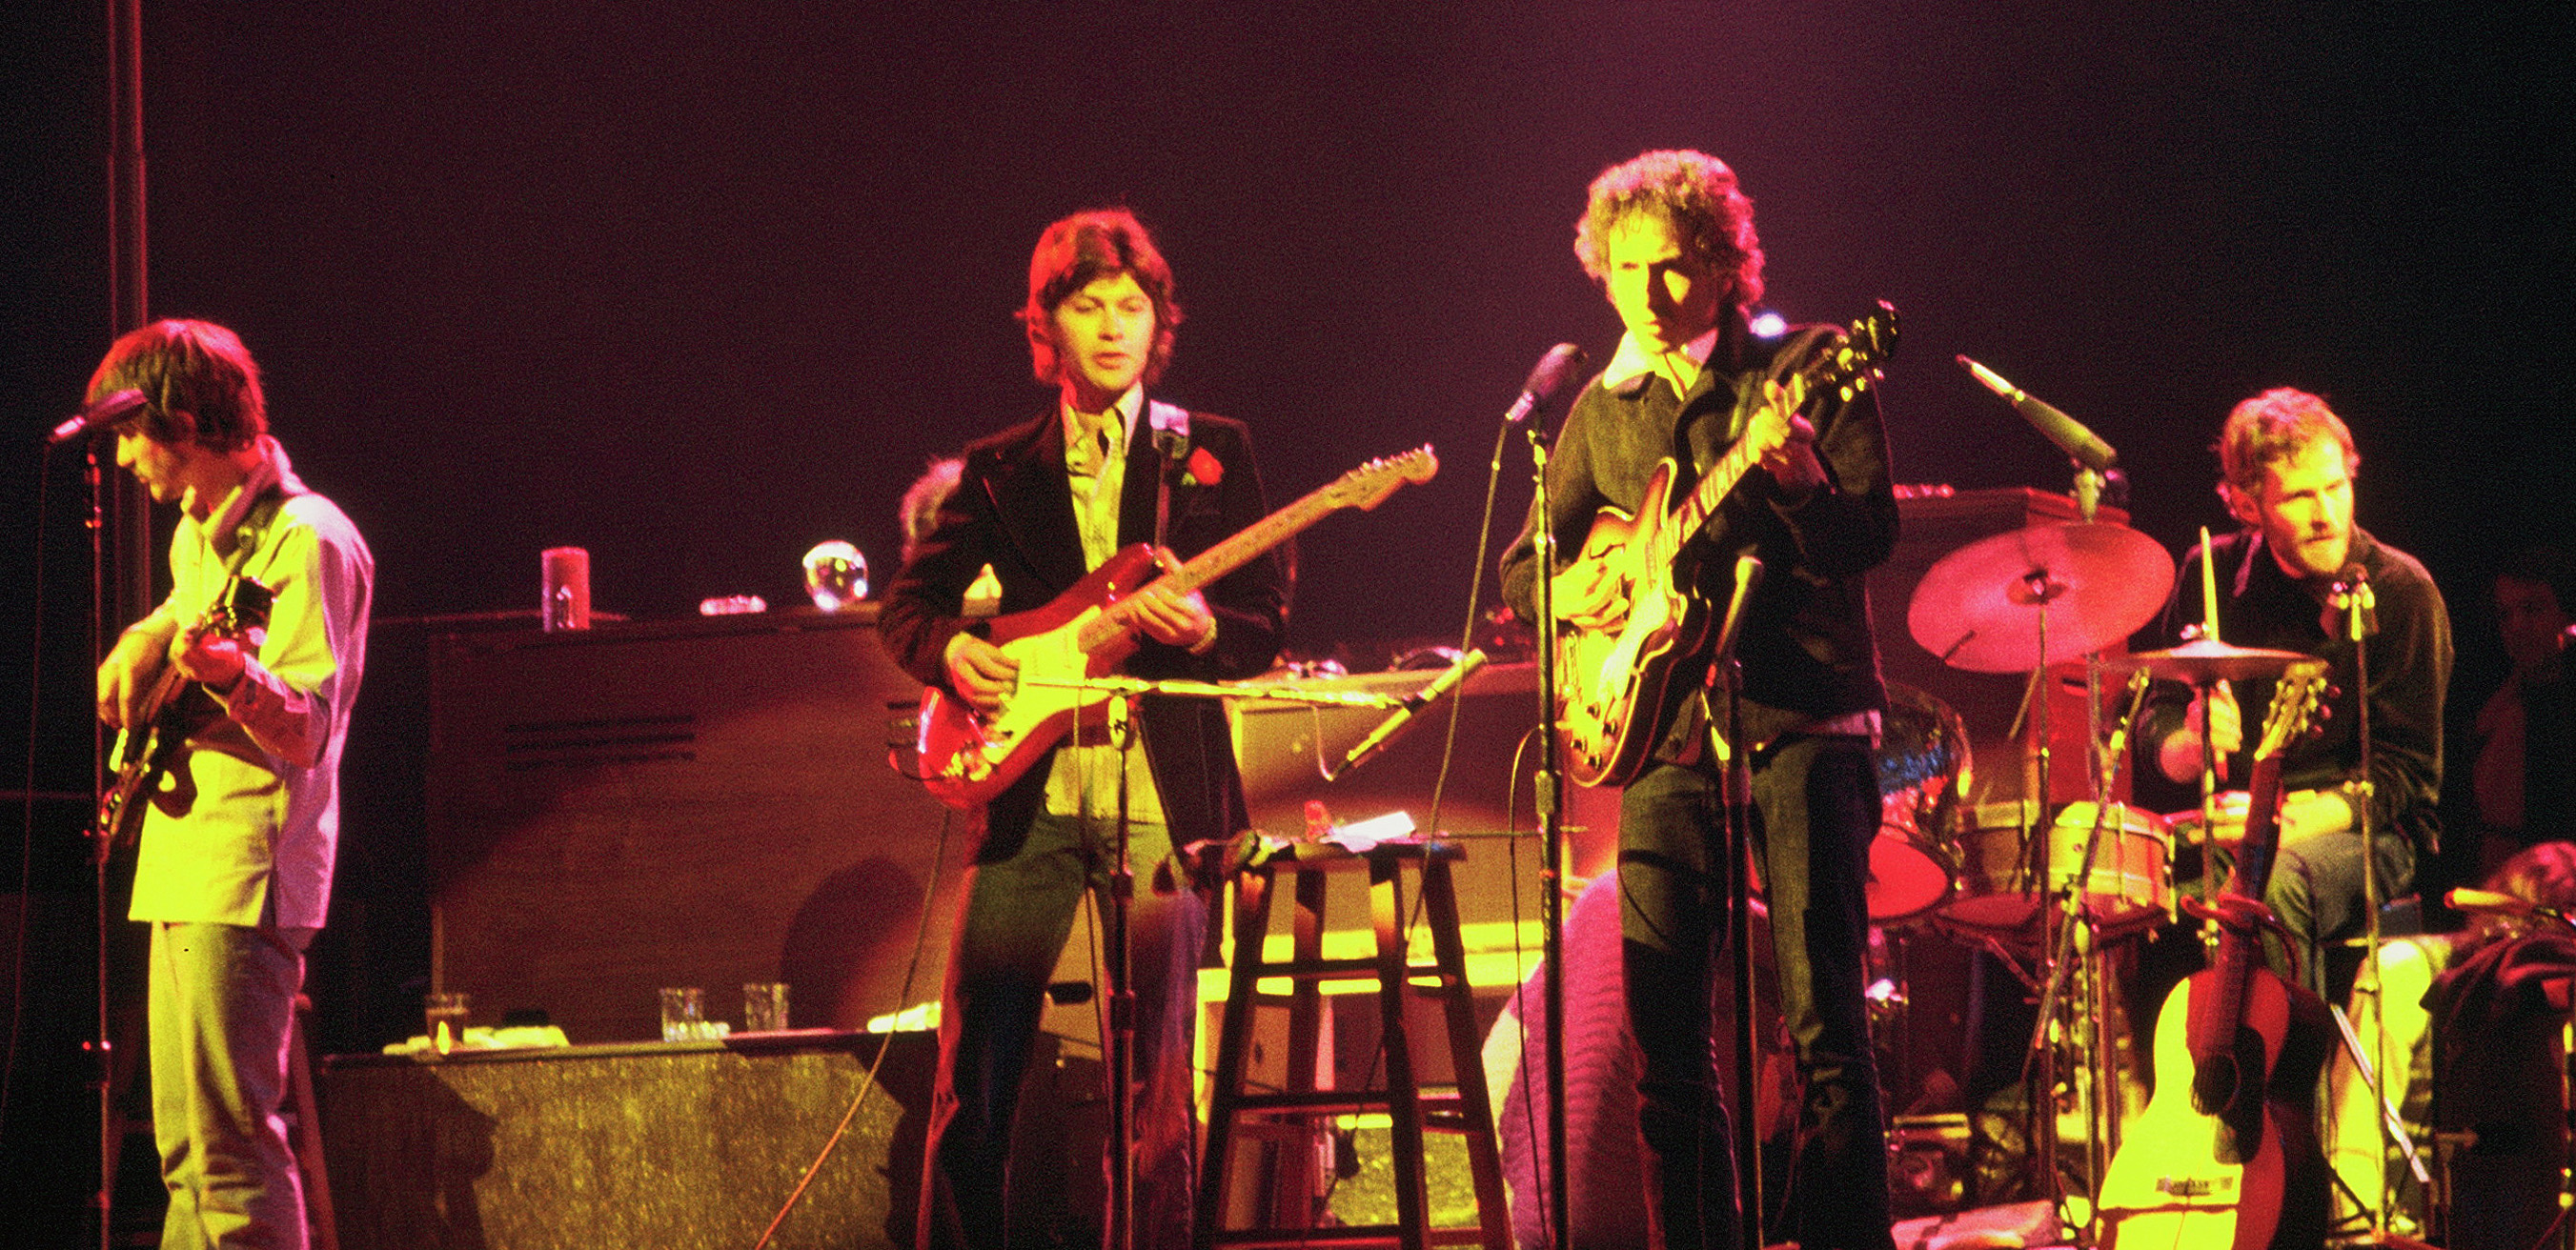 File:Bob Dylan and The Band - 1974.jpg - Wikimedia Commons